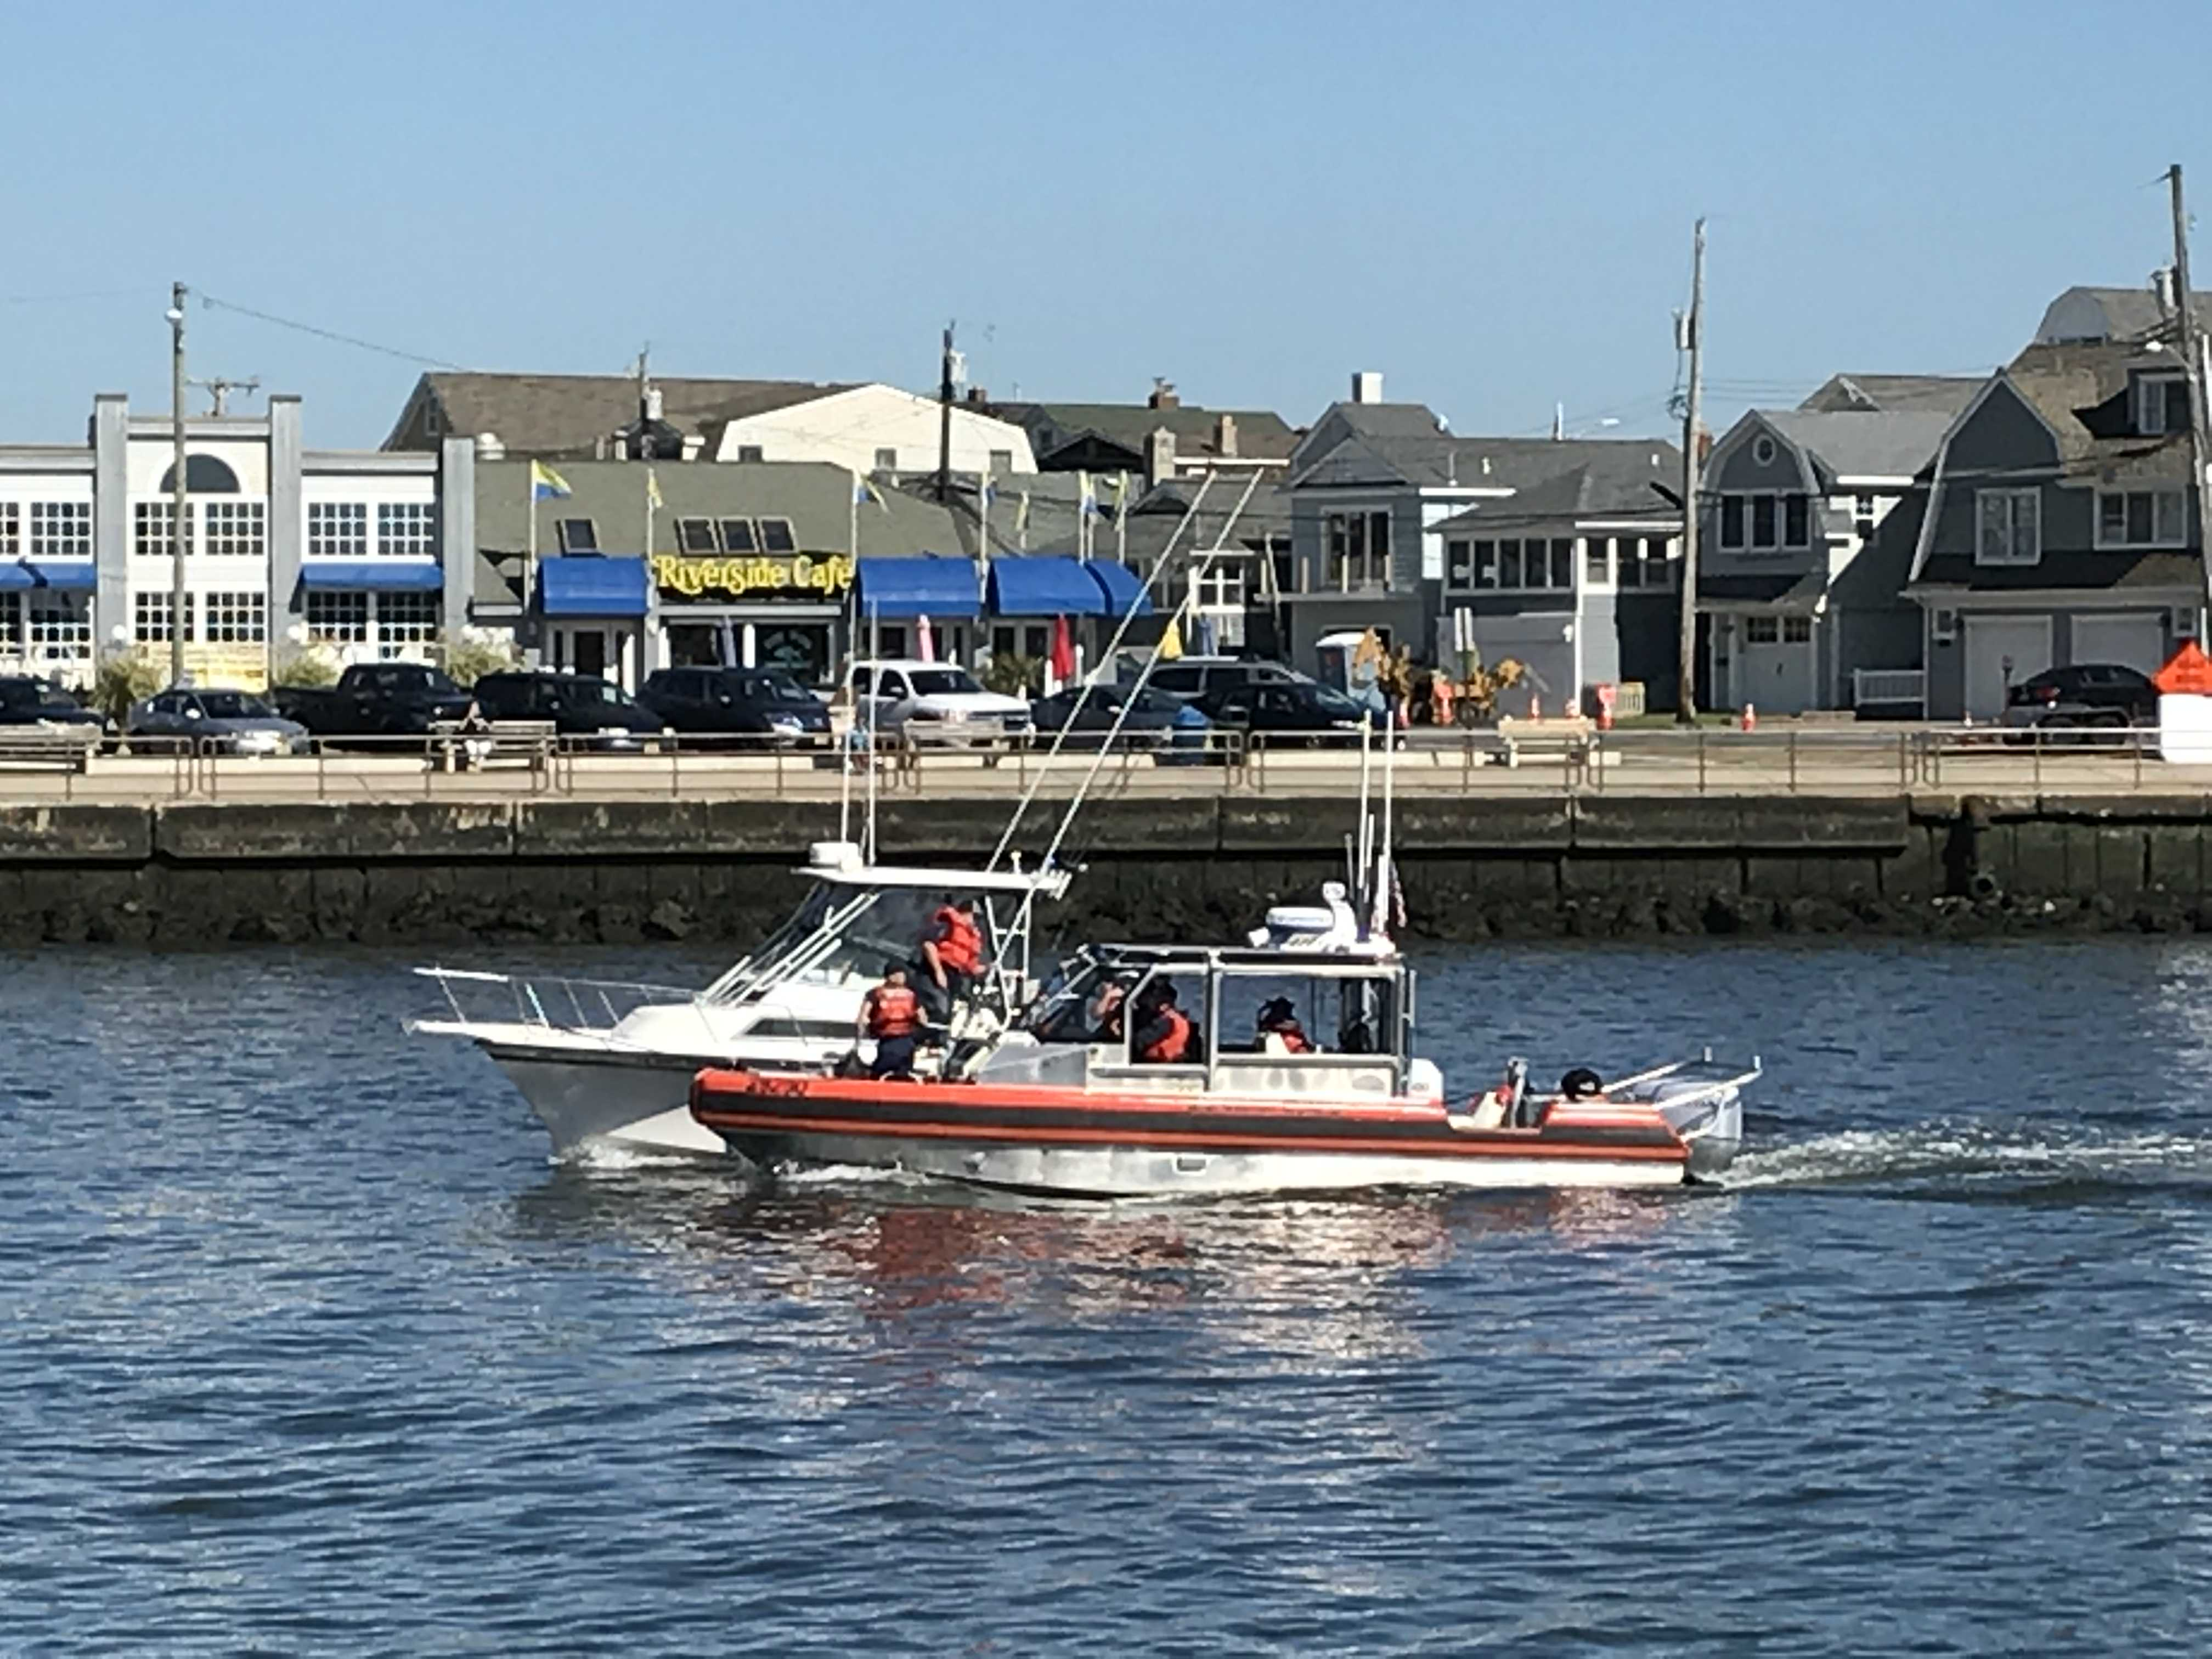 A U.S. Coast Guard crew in Manasquan Inlet, N.J. (Photo: Daniel Nee)